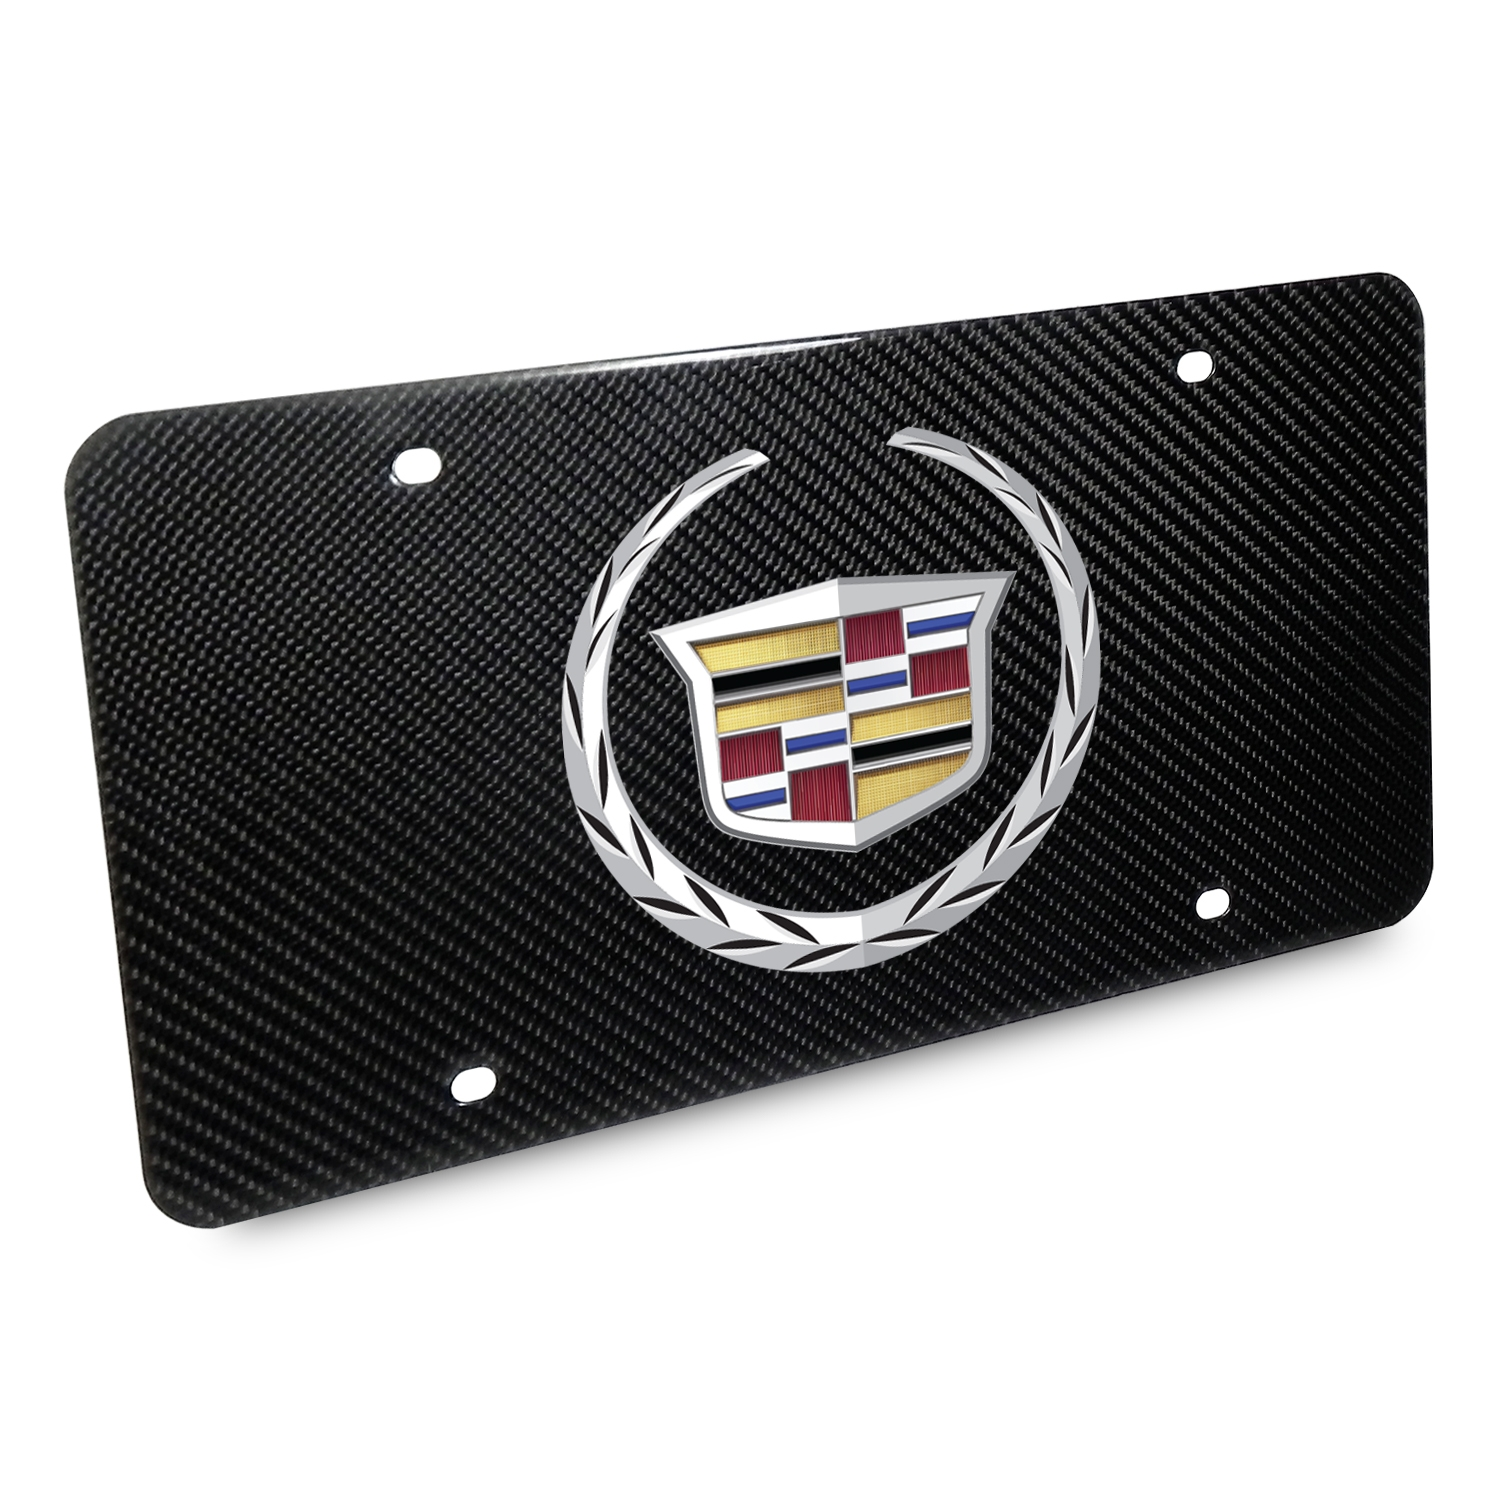 Cadillac 2013 Logo UV Graphic 100% Real Black Carbon Fiber License Plate